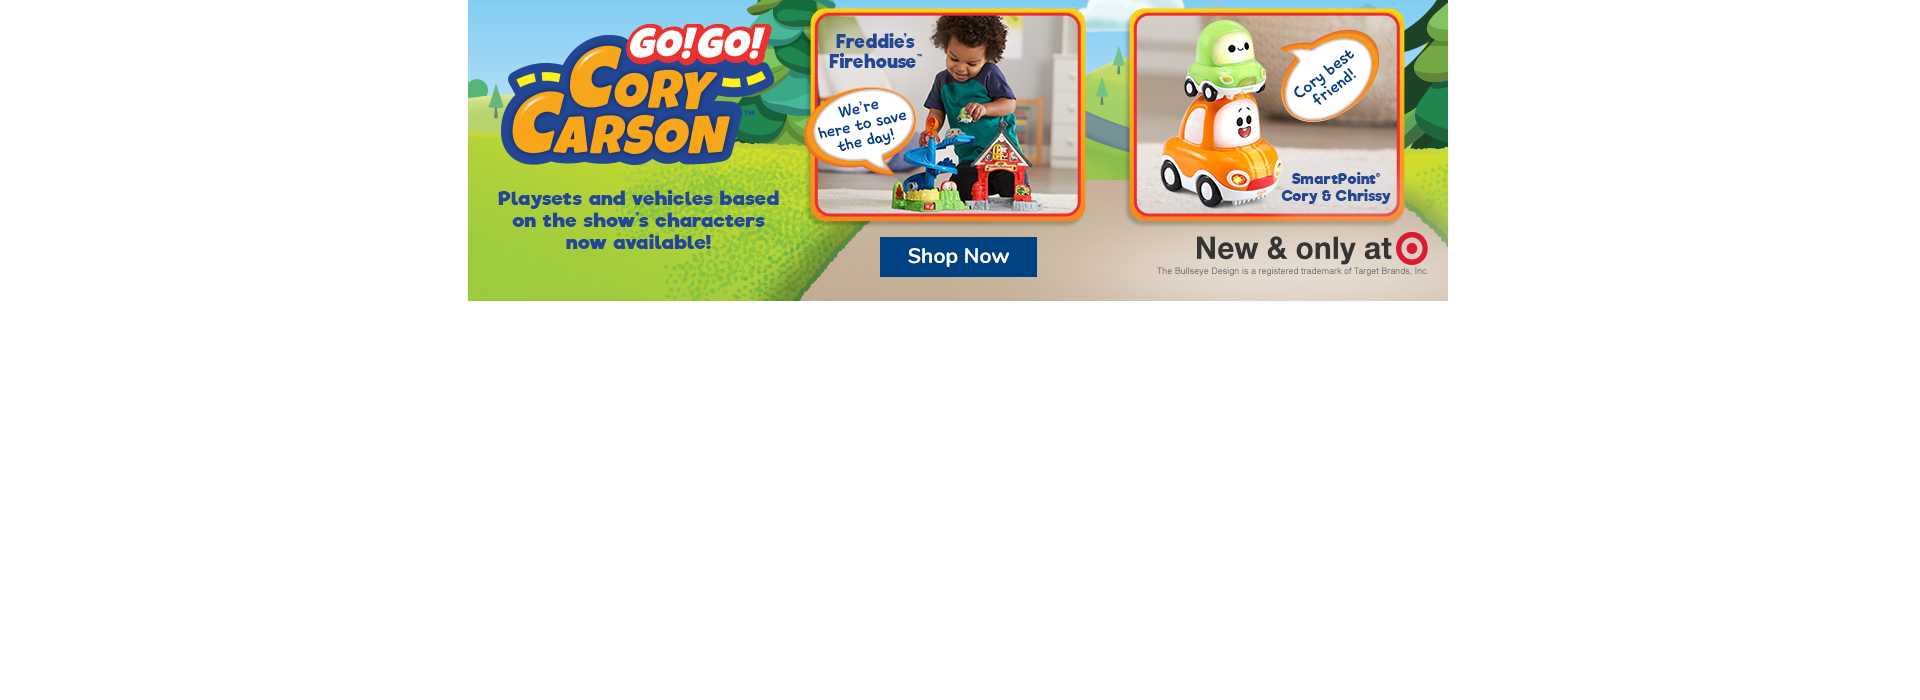 Go! Go! Cory Carson Playsets and Character Vehicles New And only at Target